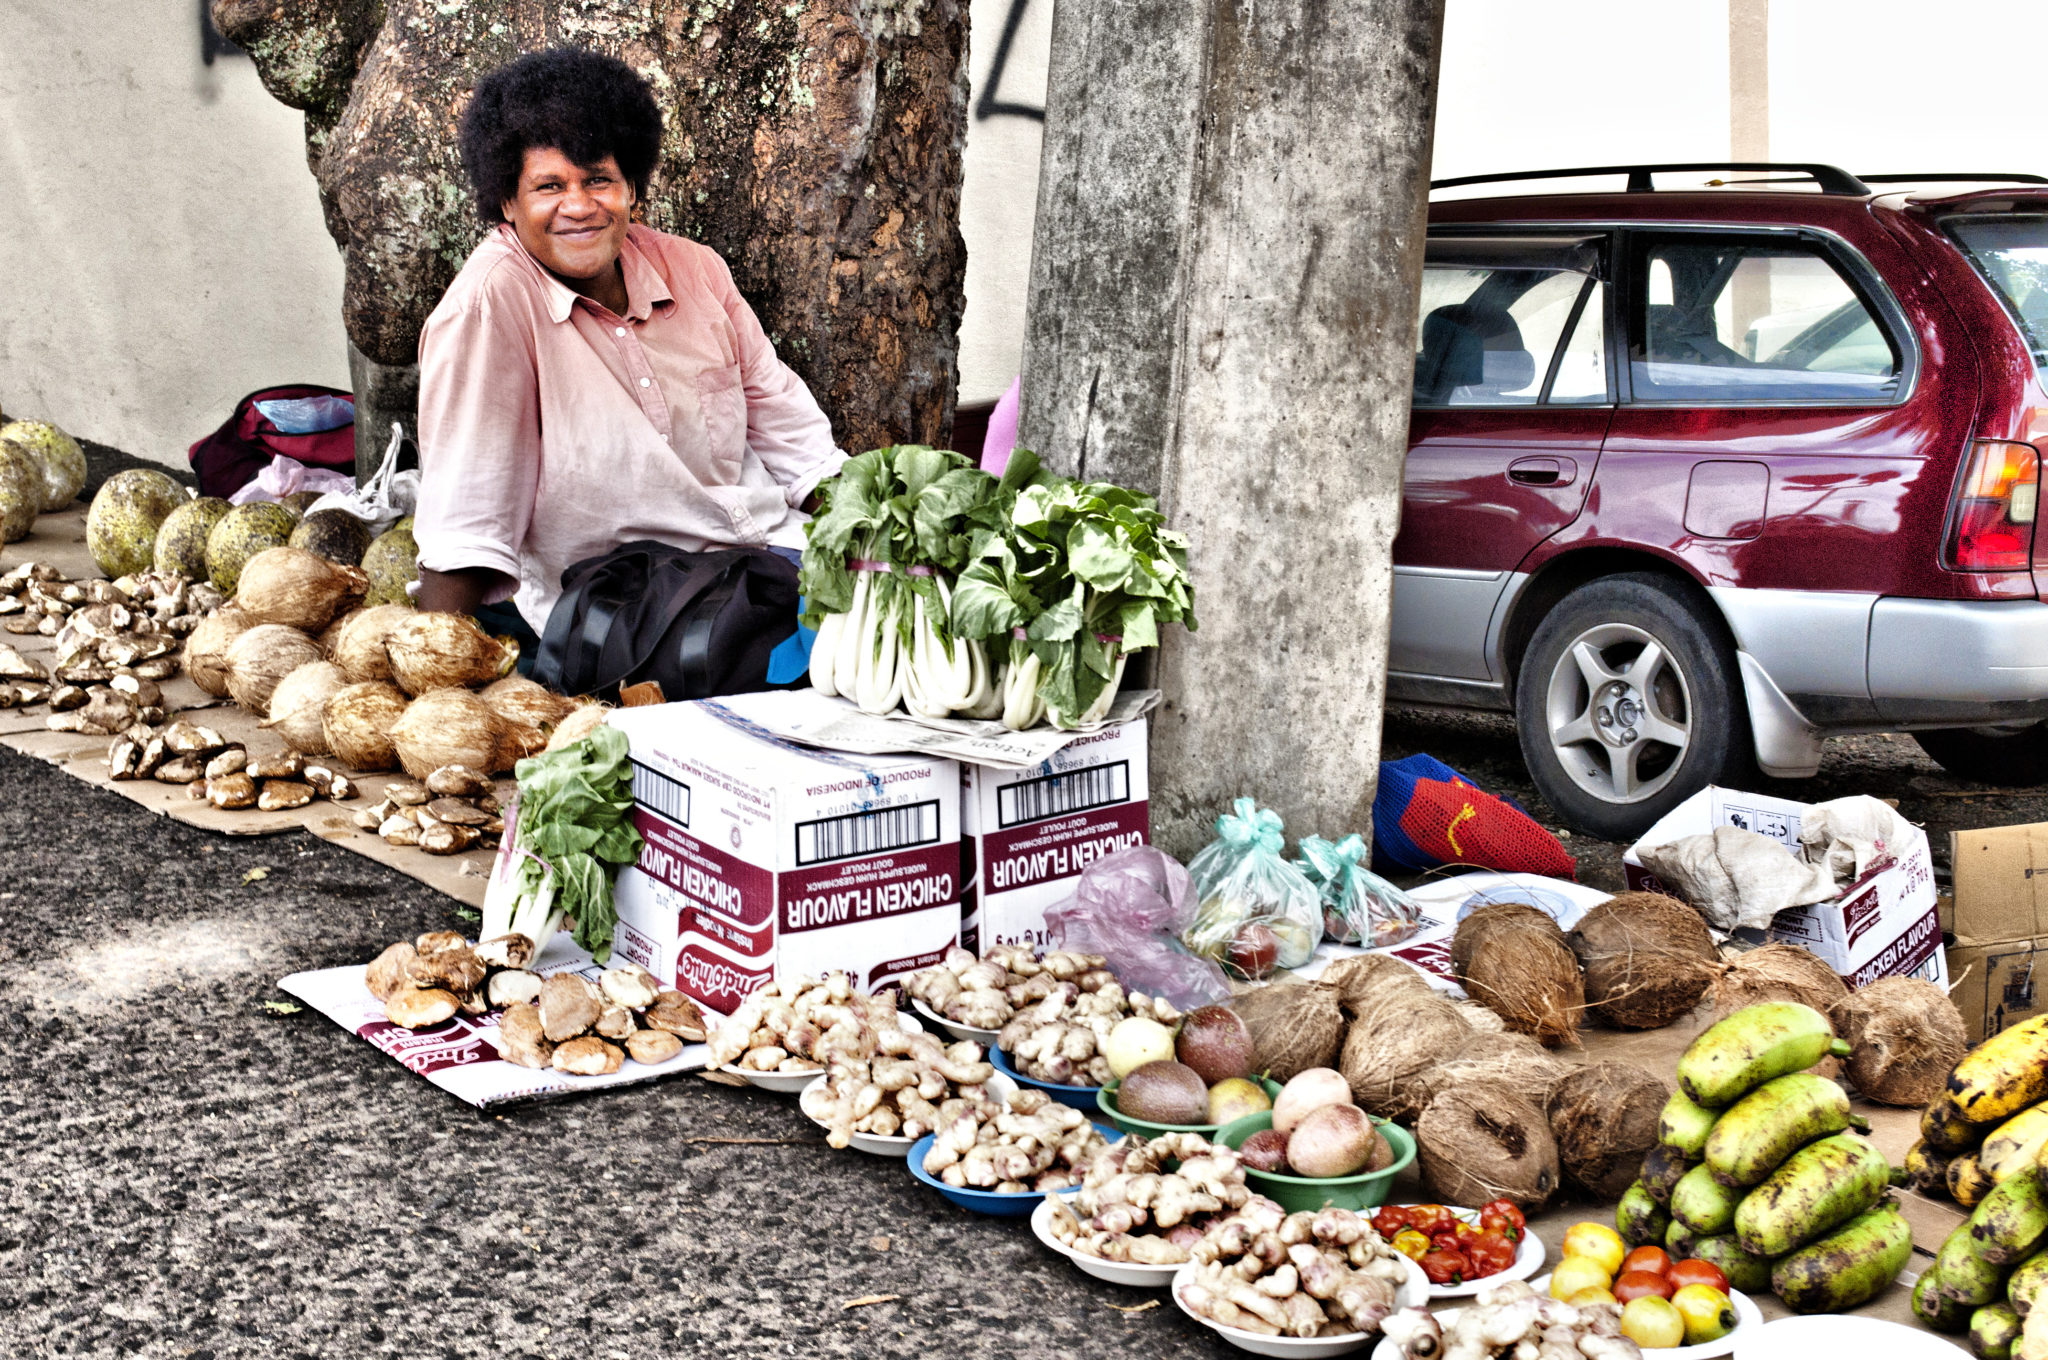 Fiji-Islands-Woman-Market-Stall